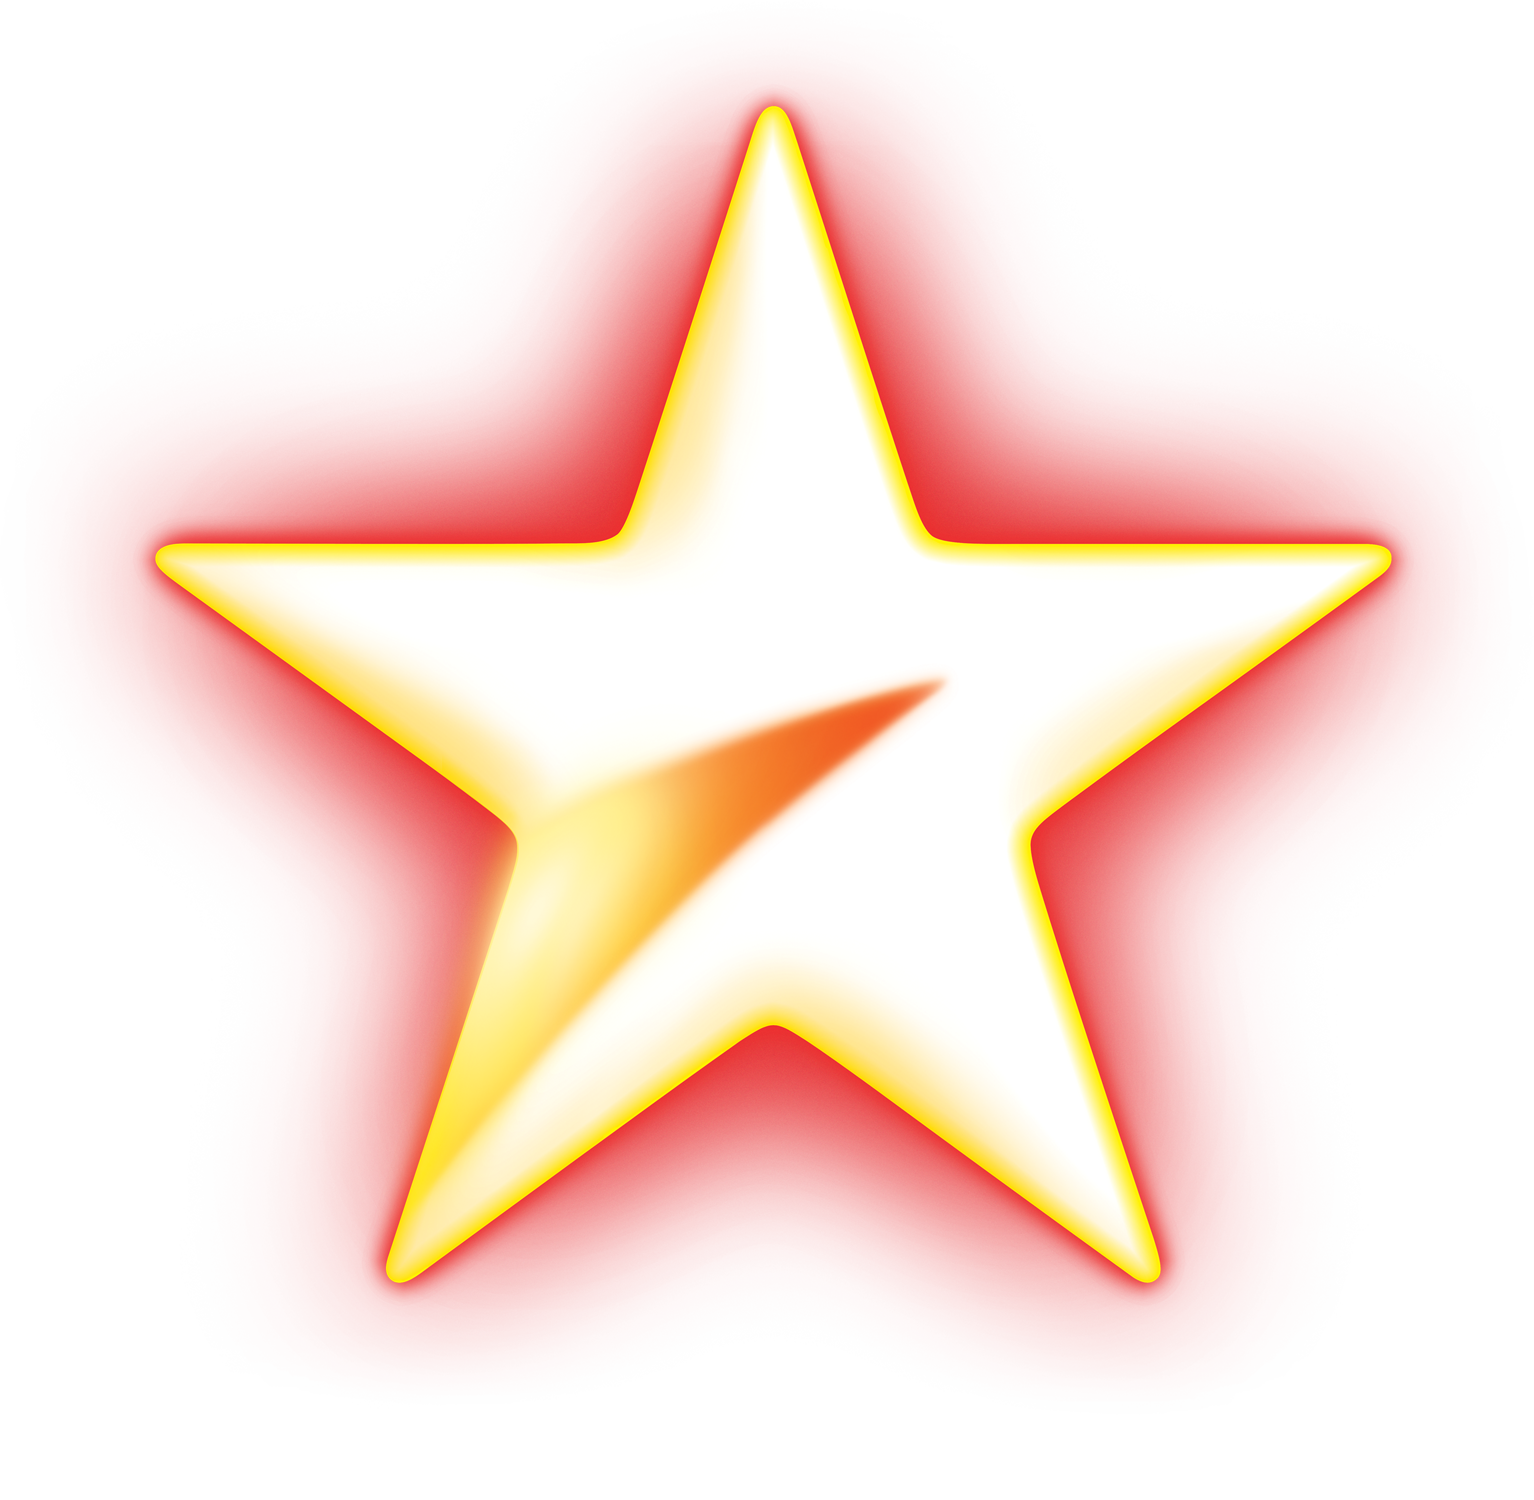 Star wallpaper clipart picture black and white Hot Golden Star PNG Image - PurePNG | Free transparent CC0 PNG Image ... picture black and white